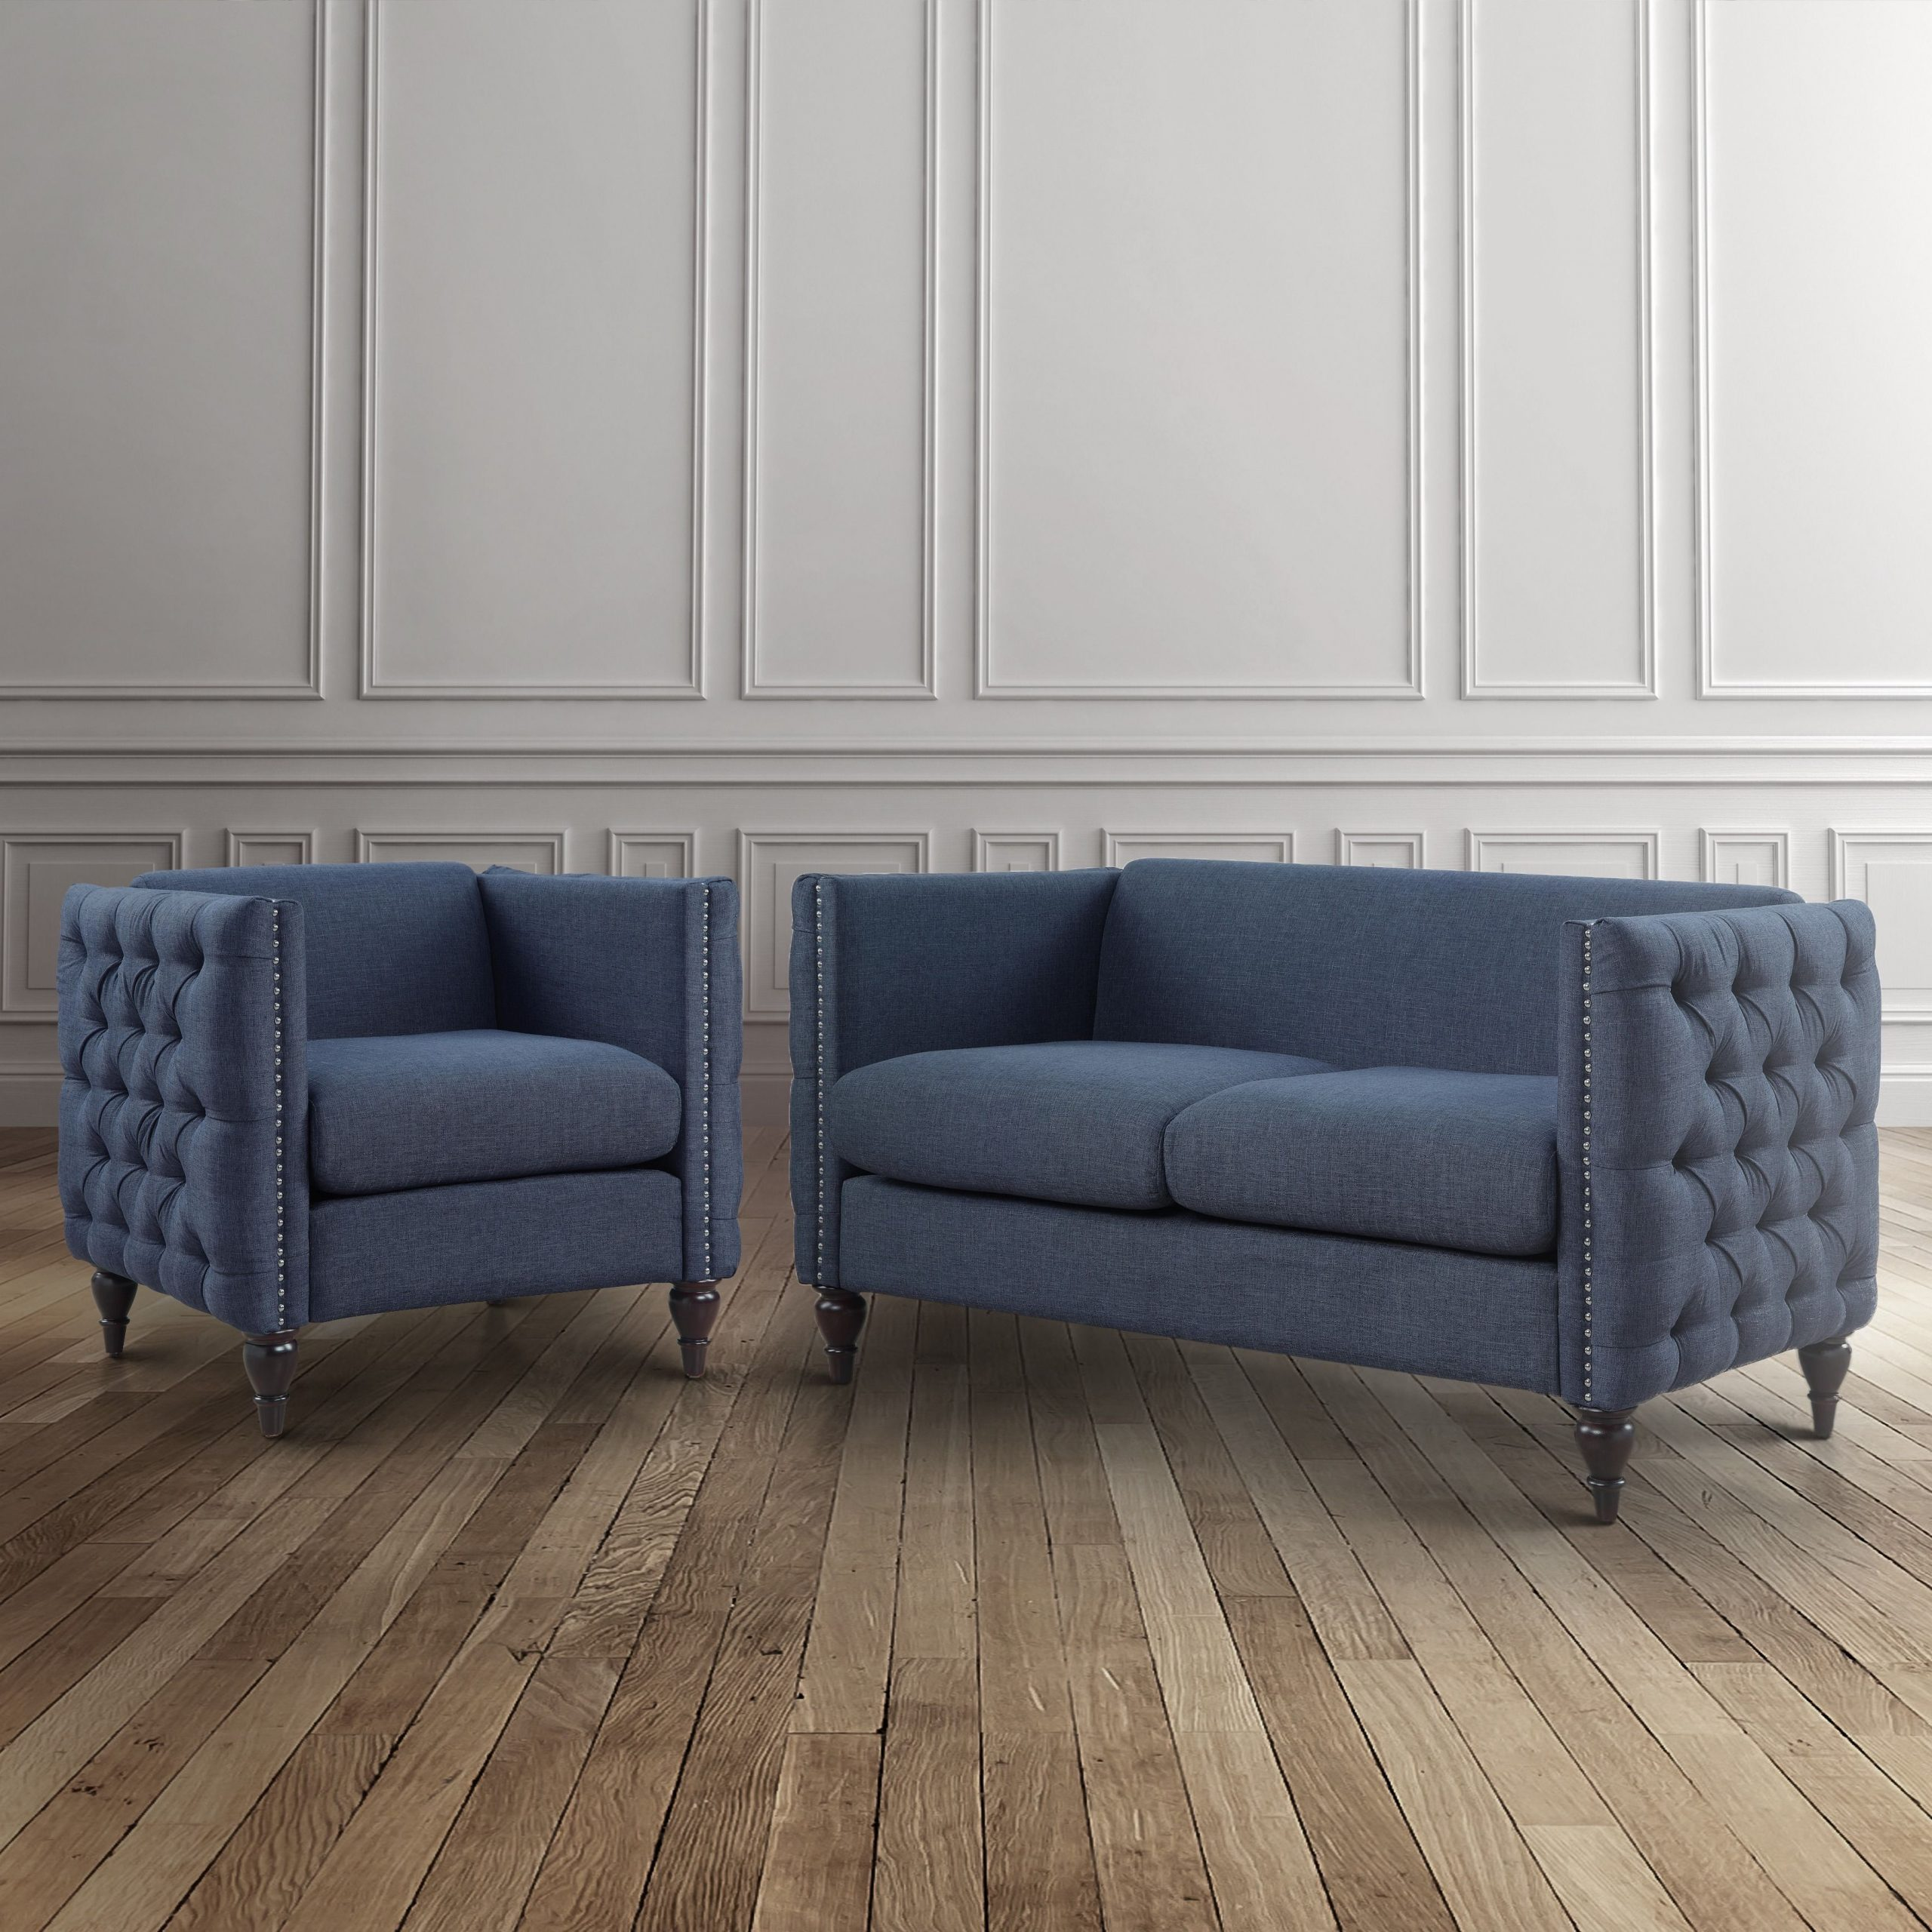 3Pc Polyfiber Sectional Sofas With Nail Head Trim Blue/Gray Regarding Widely Used Online Shopping – Bedding, Furniture, Electronics, Jewelry (View 13 of 25)